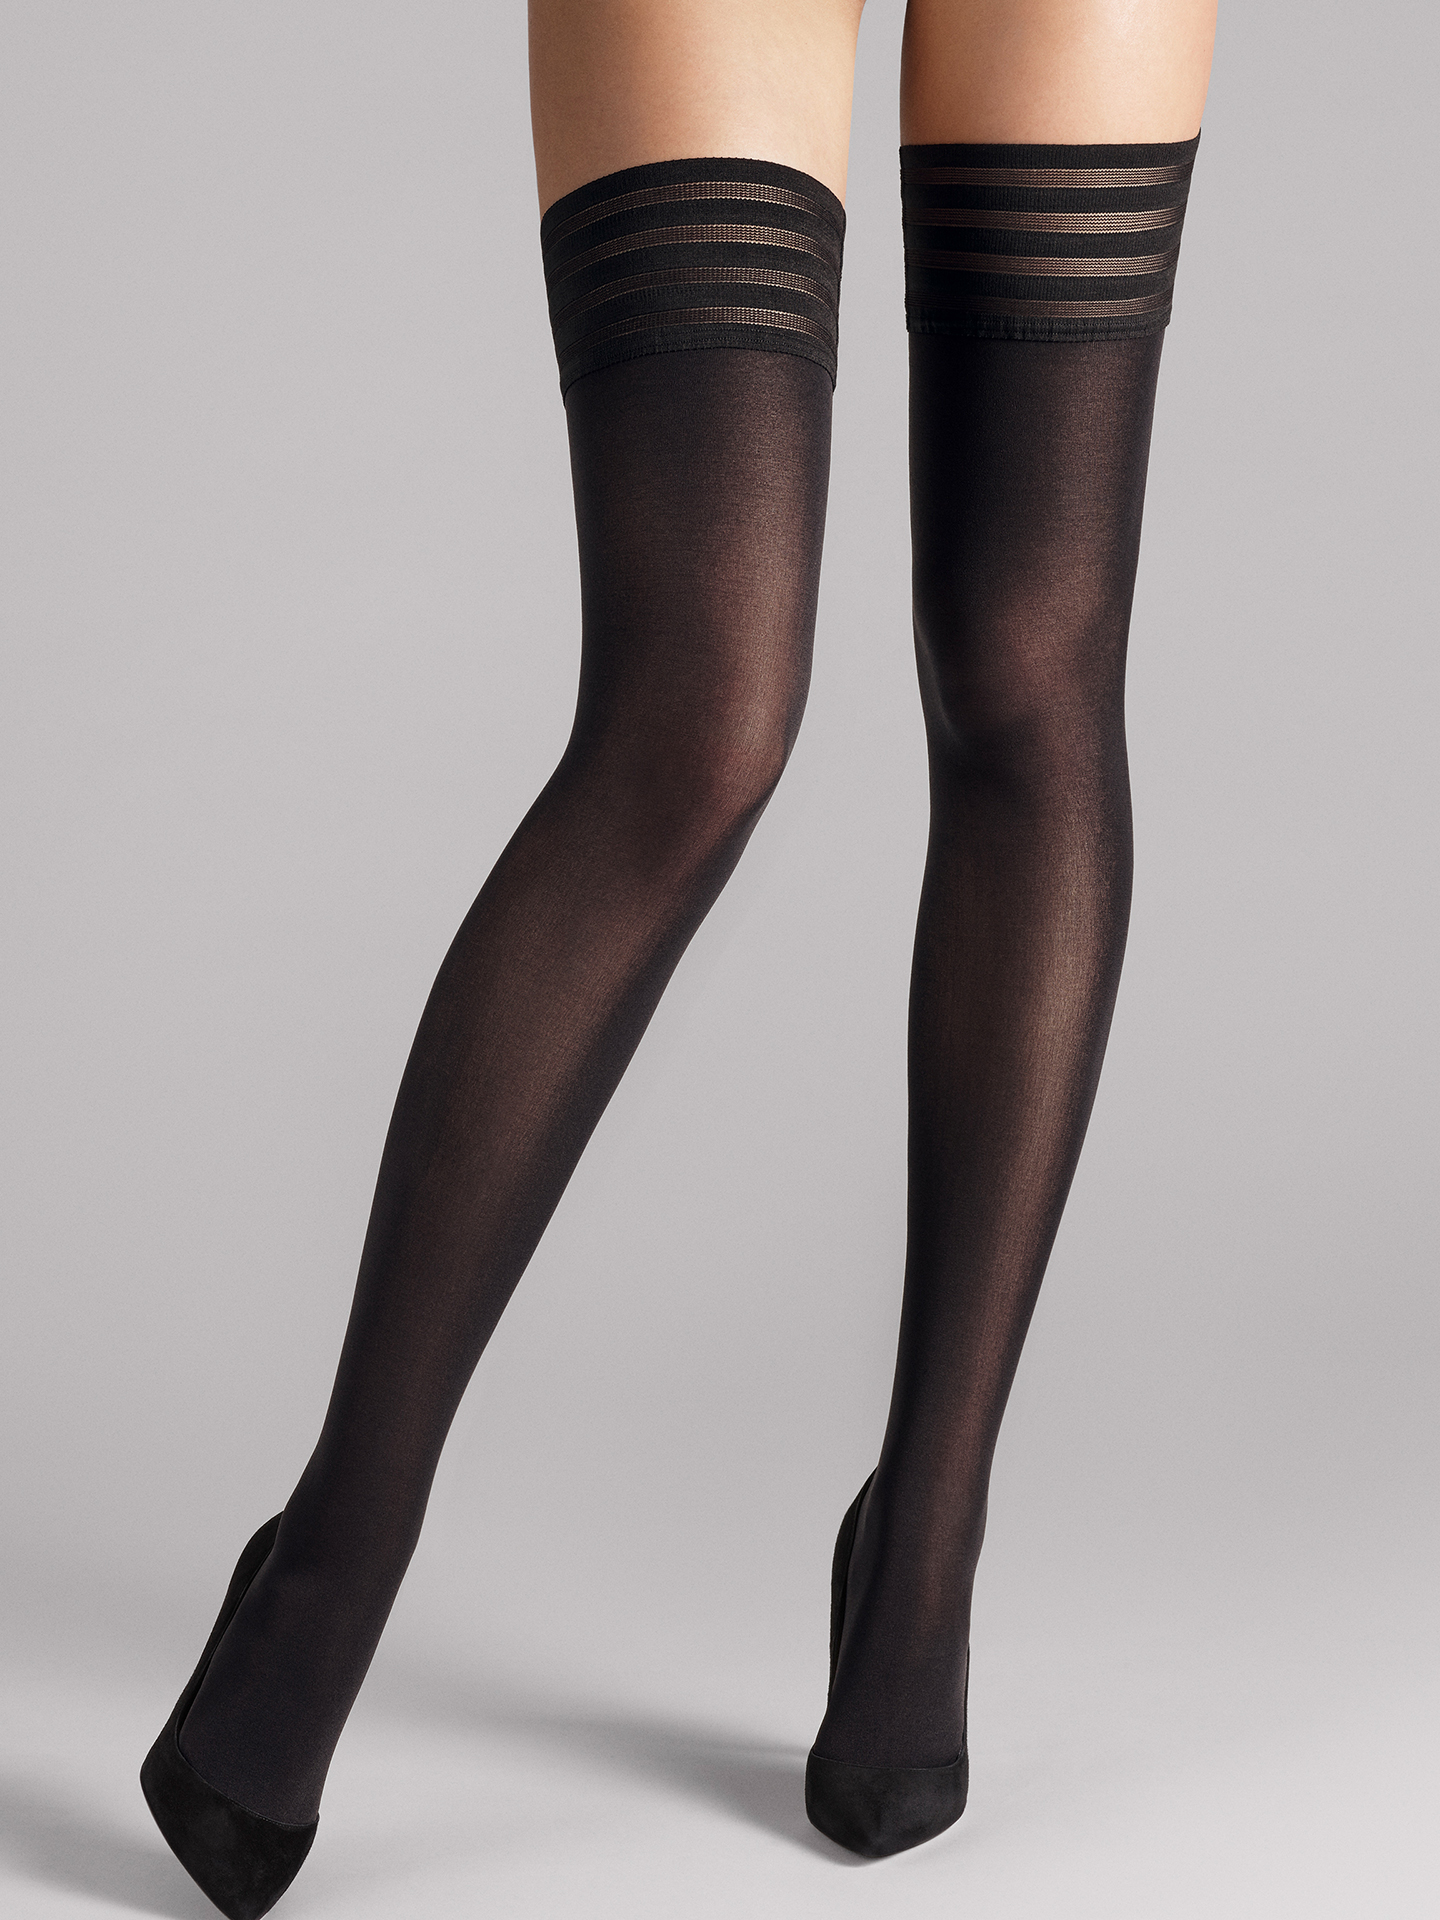 Wolford Apparel & Accessories > Clothing > Autoreggenti & Calze Velvet de Luxe 50 Stay-Up